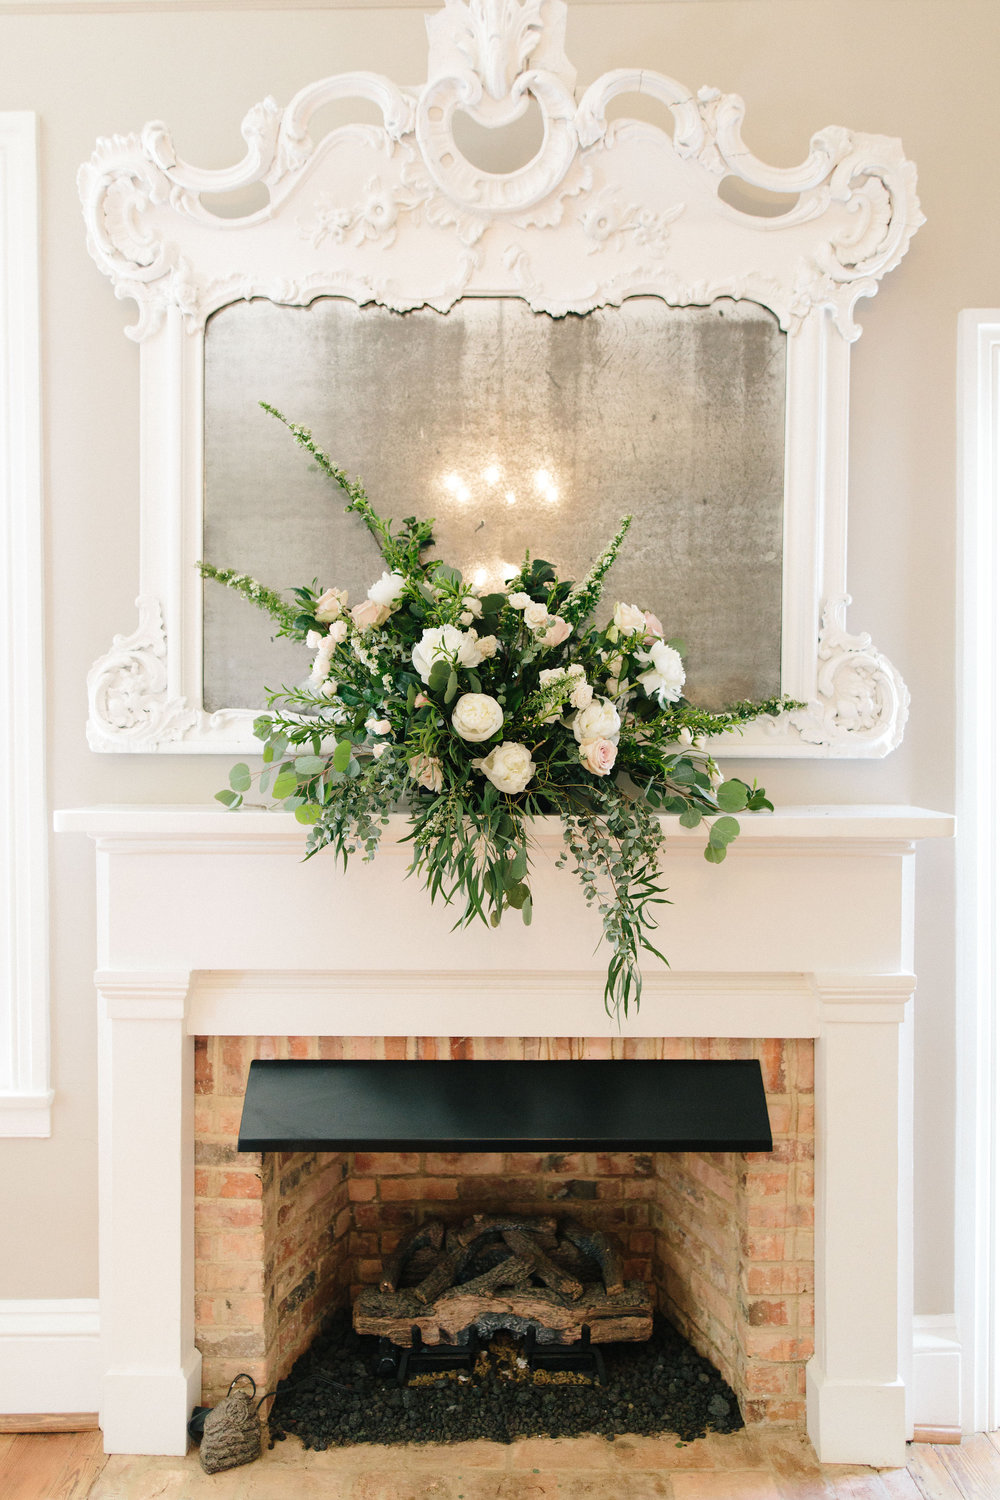 Mantle fireplace flower arrangement